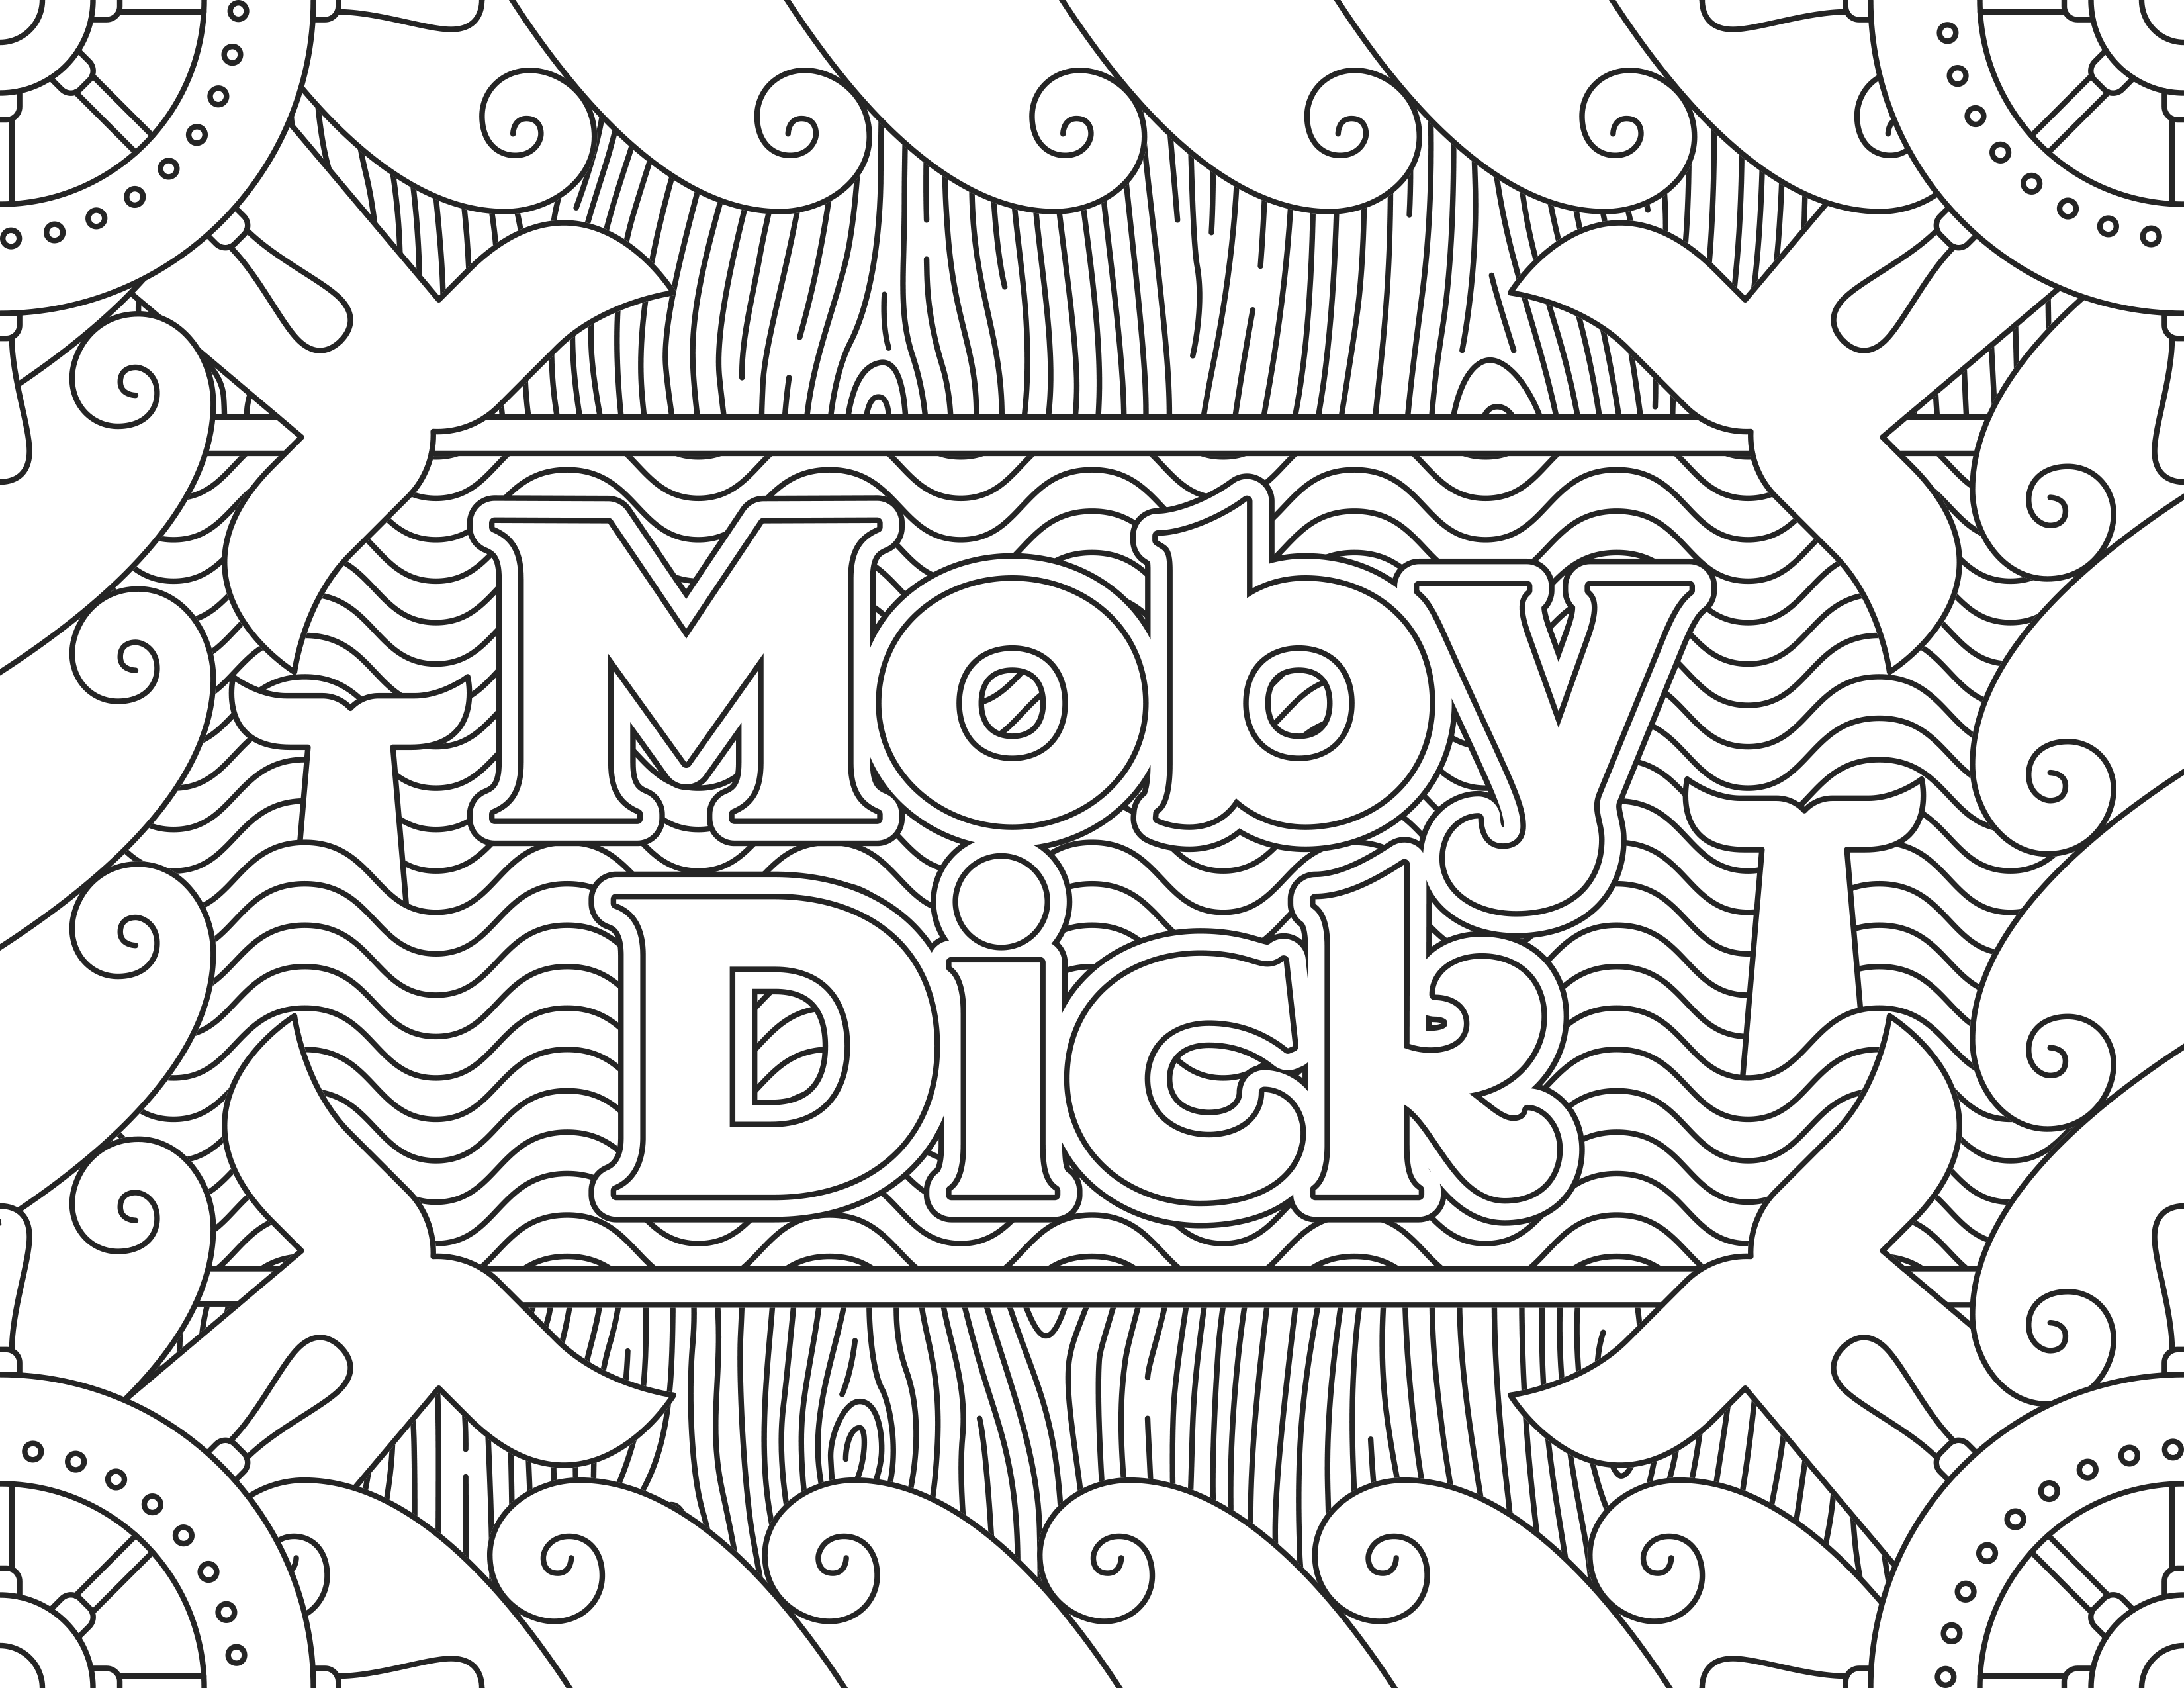 Here are coloring pages created from famous movie posters